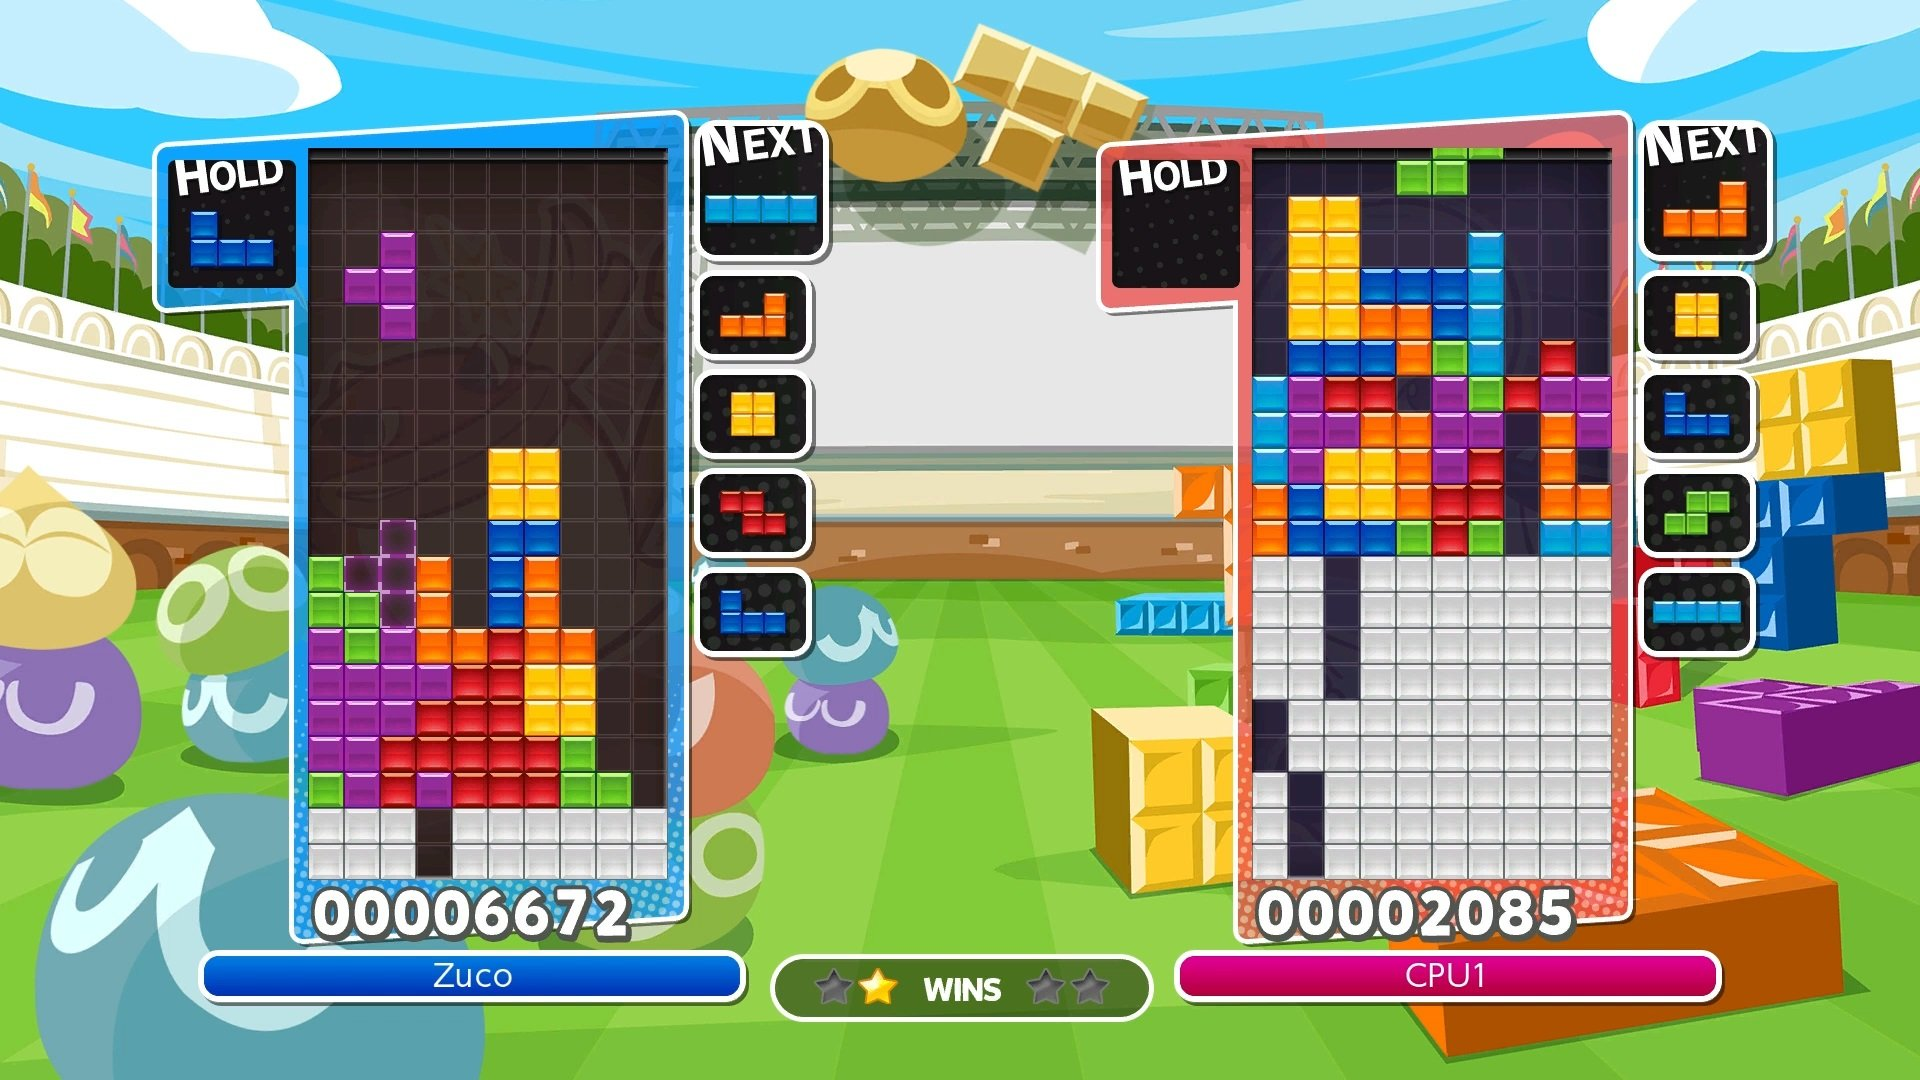 How to Keep Your Cool in Tetris Multiplayer